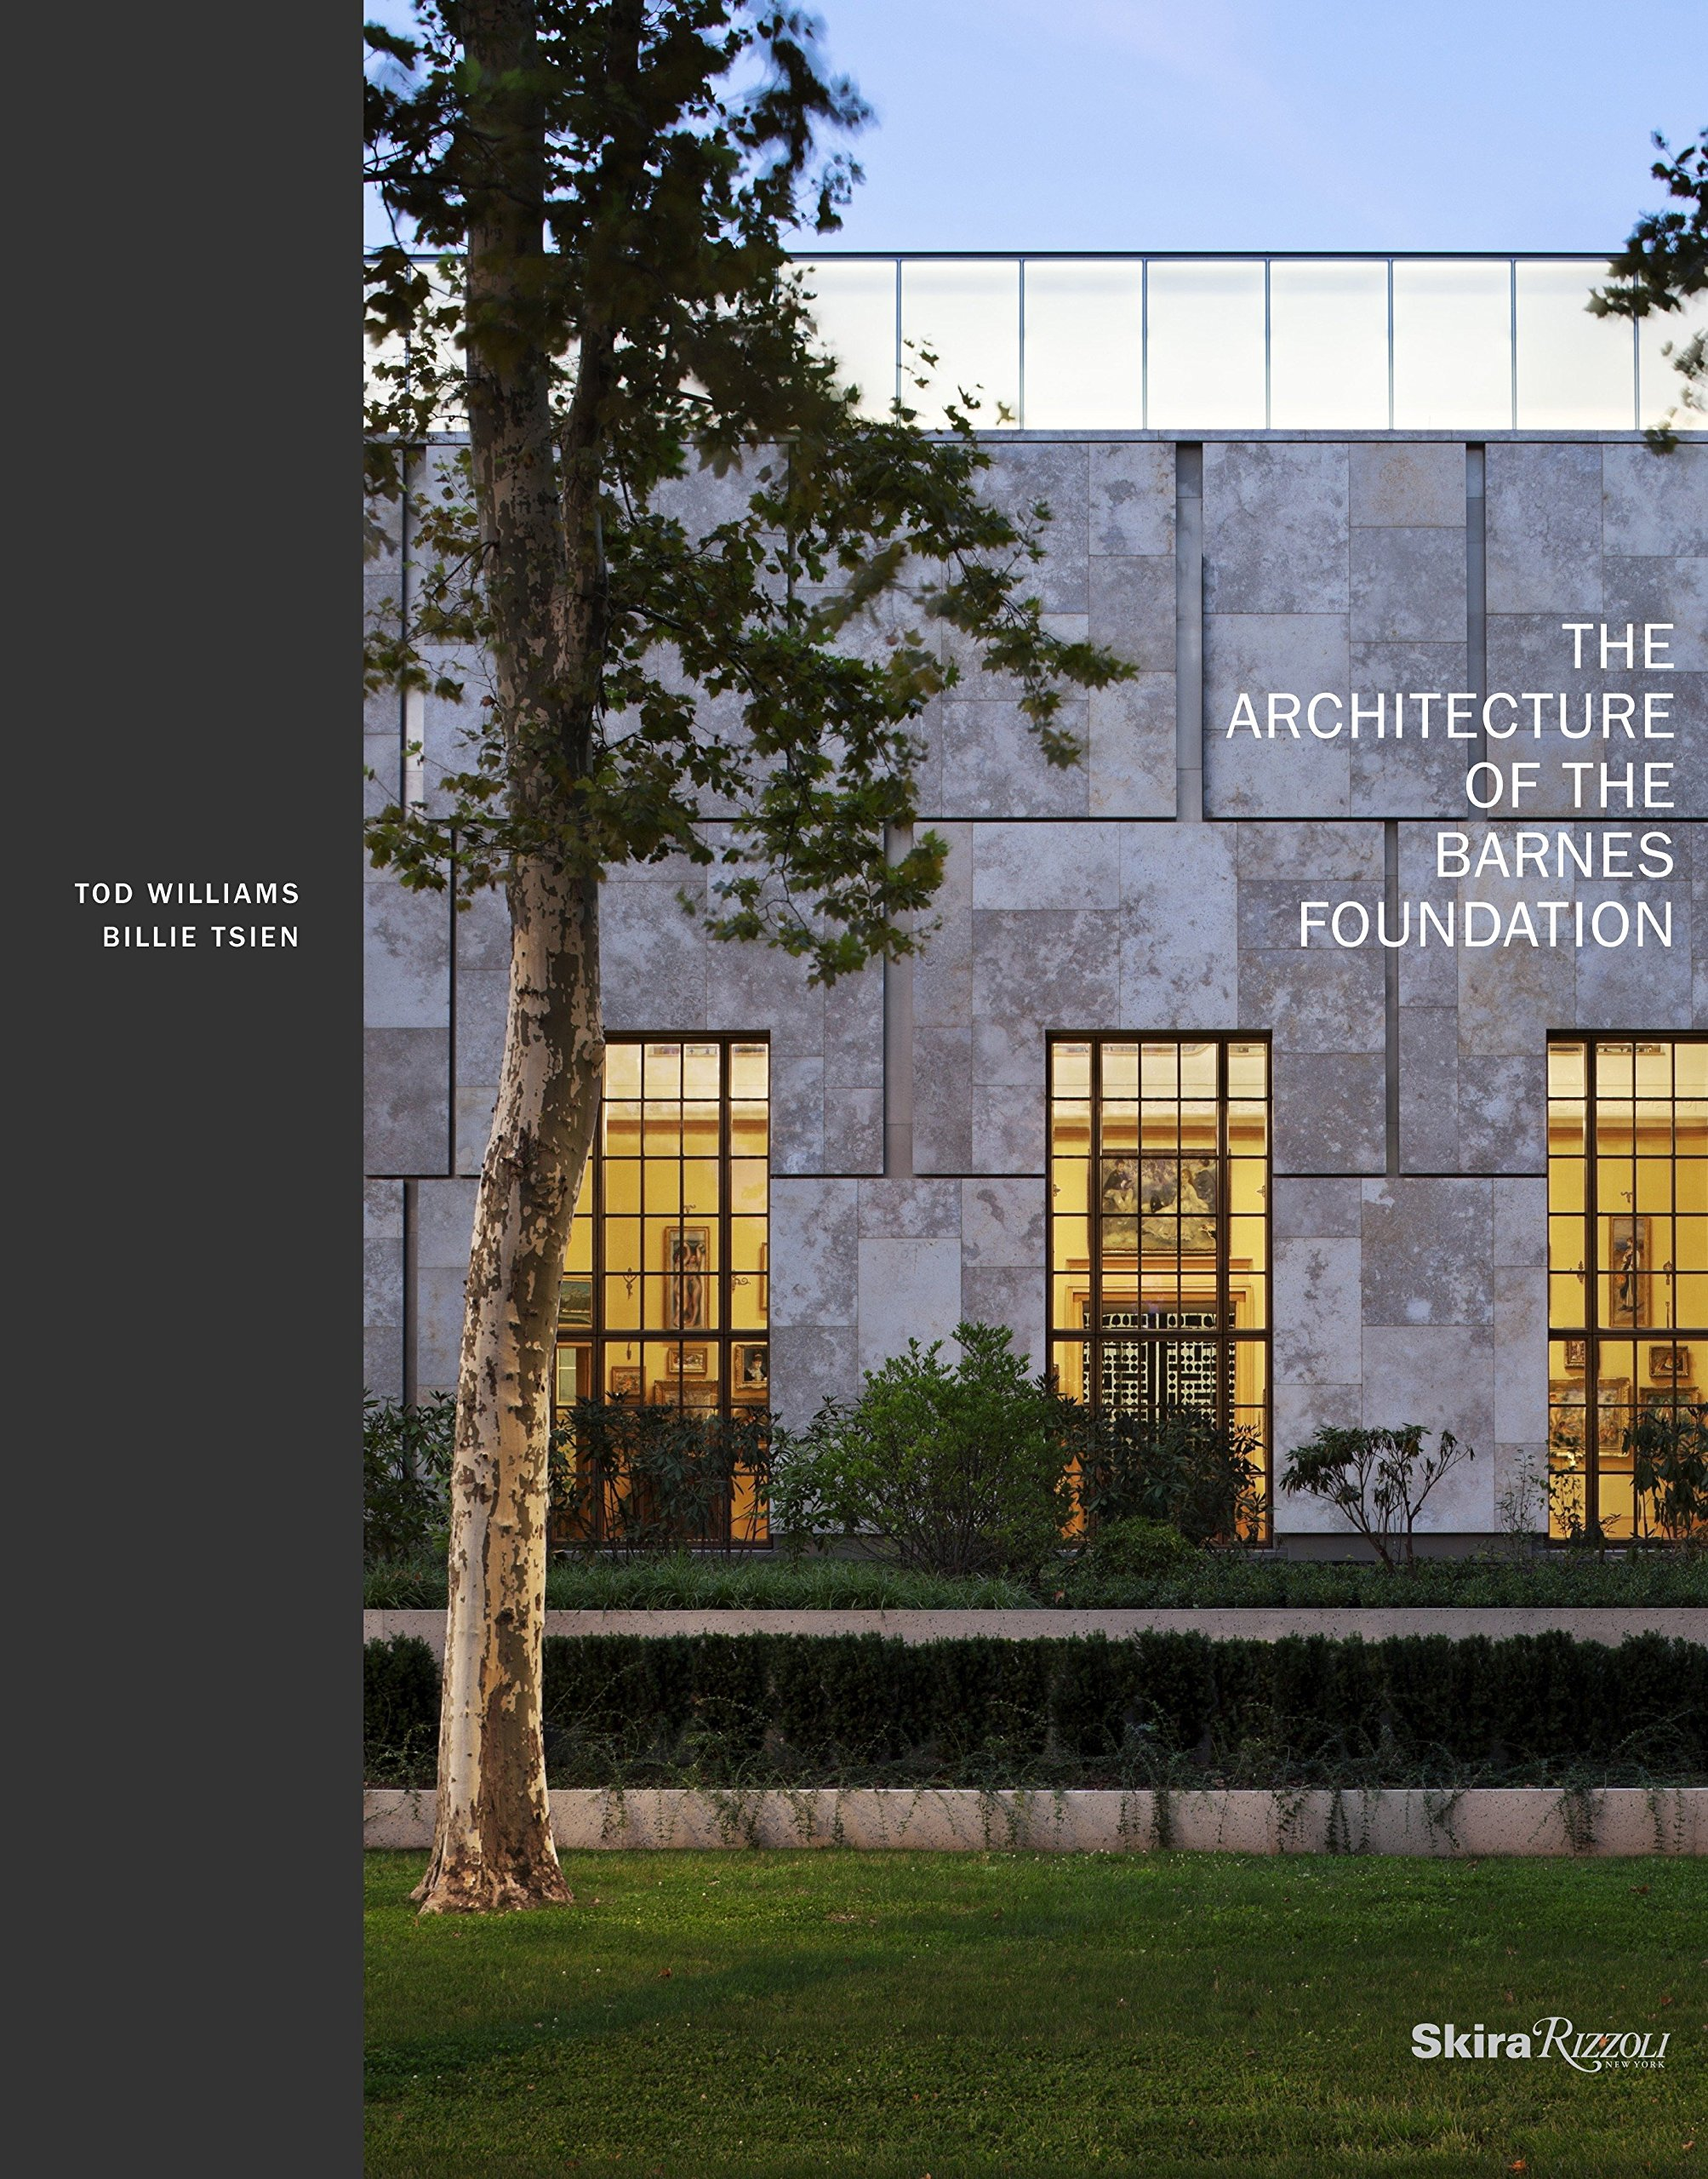 The Architecture Of The Barnes Foundation Gallery In A Garden